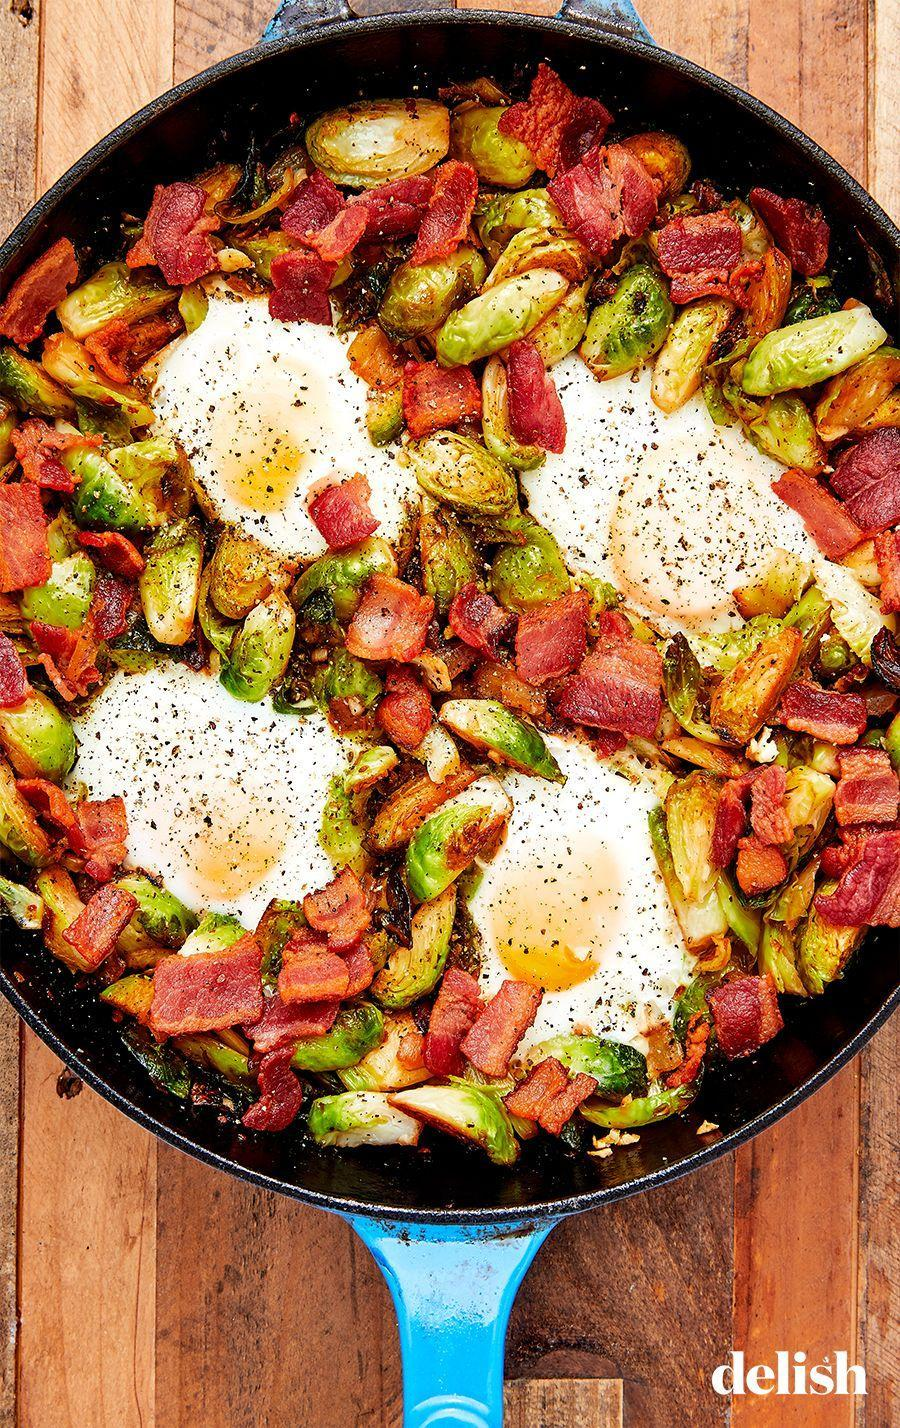 "<p>Our favorite low-carb hash.</p><p>Get the recipe from <a href=""https://www.delish.com/cooking/recipe-ideas/recipes/a58136/brussels-sprouts-hash-recipe/"" rel=""nofollow noopener"" target=""_blank"" data-ylk=""slk:Delish"" class=""link rapid-noclick-resp"">Delish</a>.</p>"